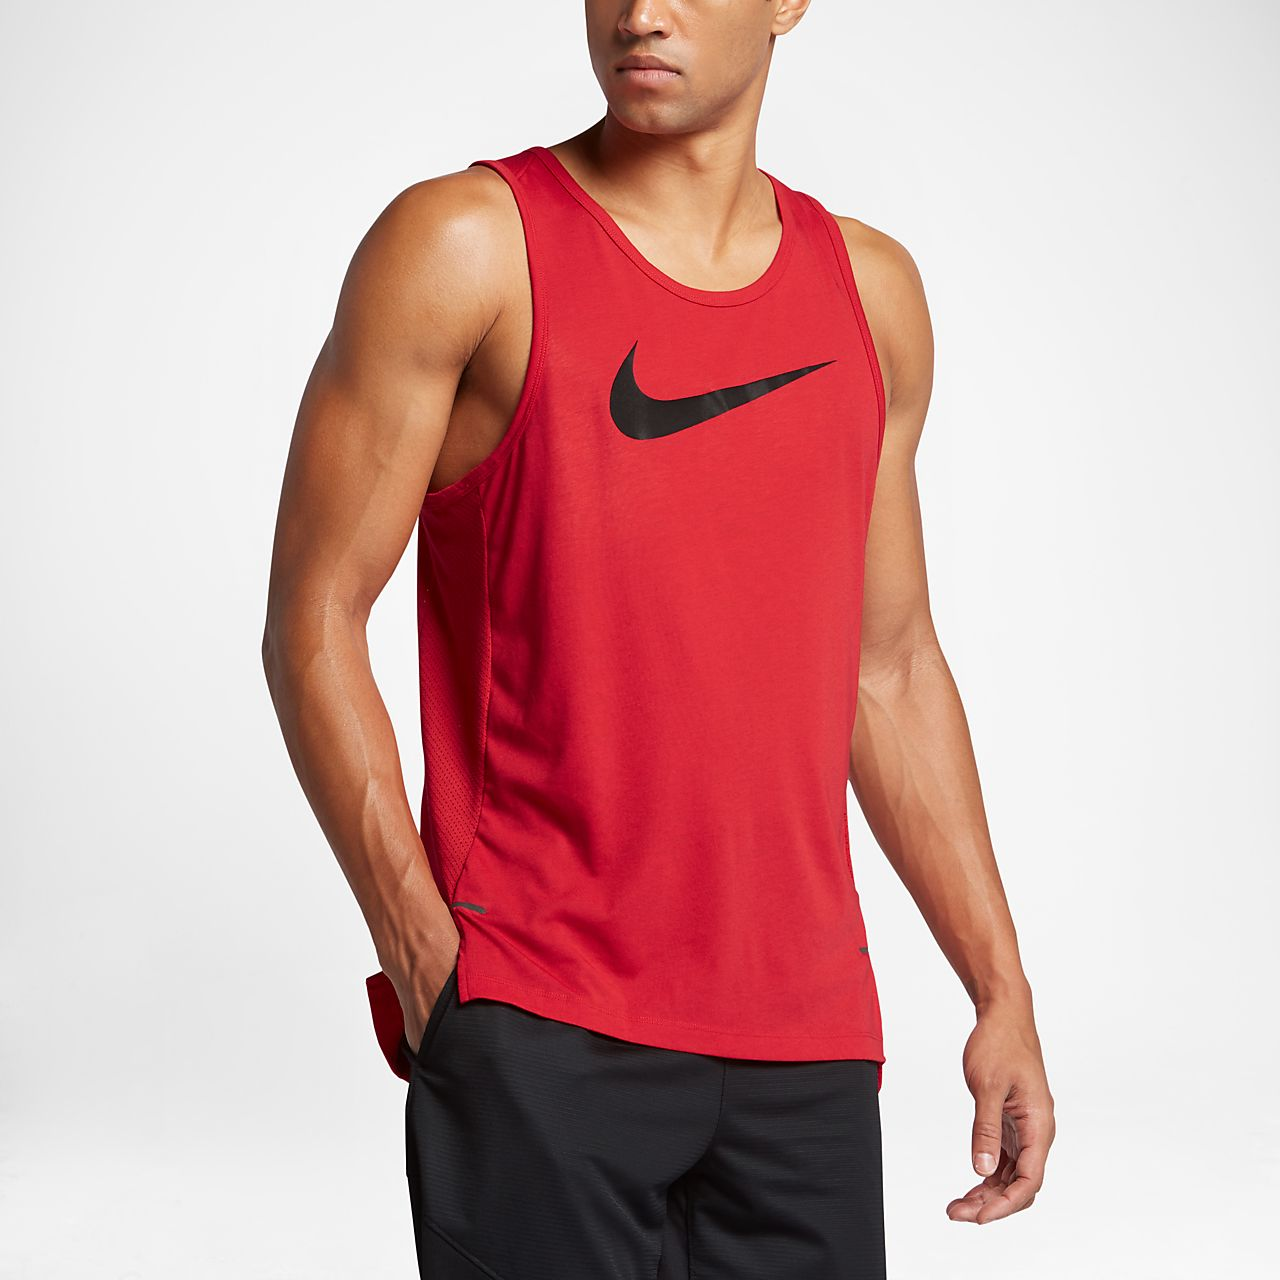 camiseta de tirantes de b squetbol para hombre nike dry. Black Bedroom Furniture Sets. Home Design Ideas